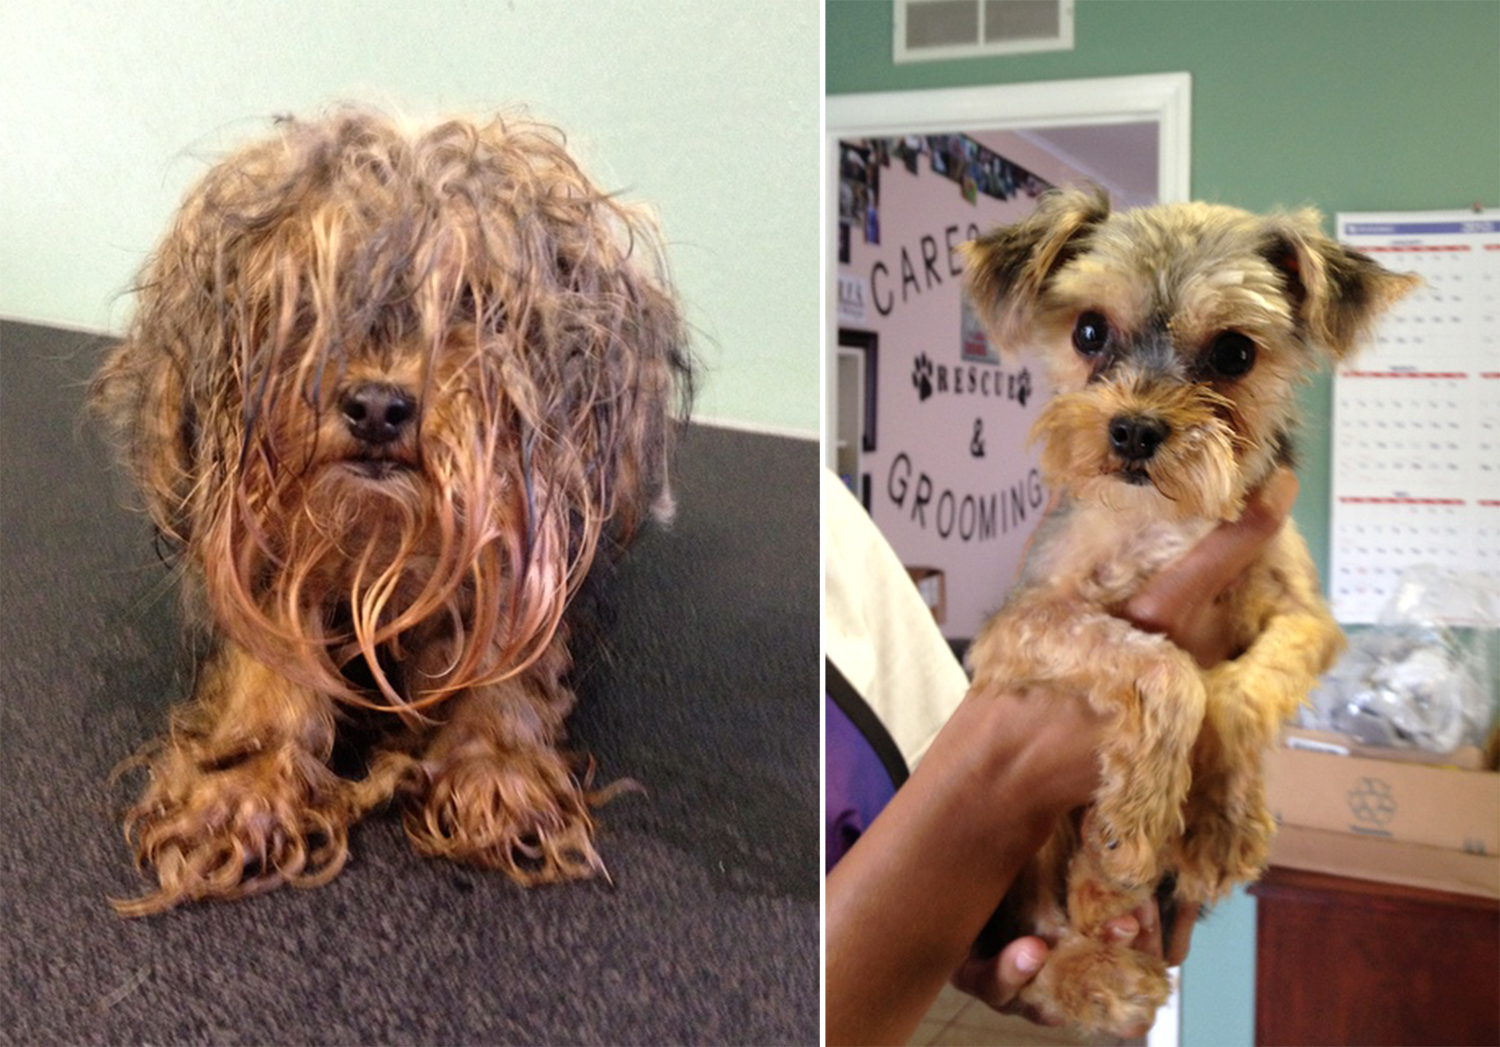 Double take! Doggie makeovers reveal shelter pets' true, happy selves